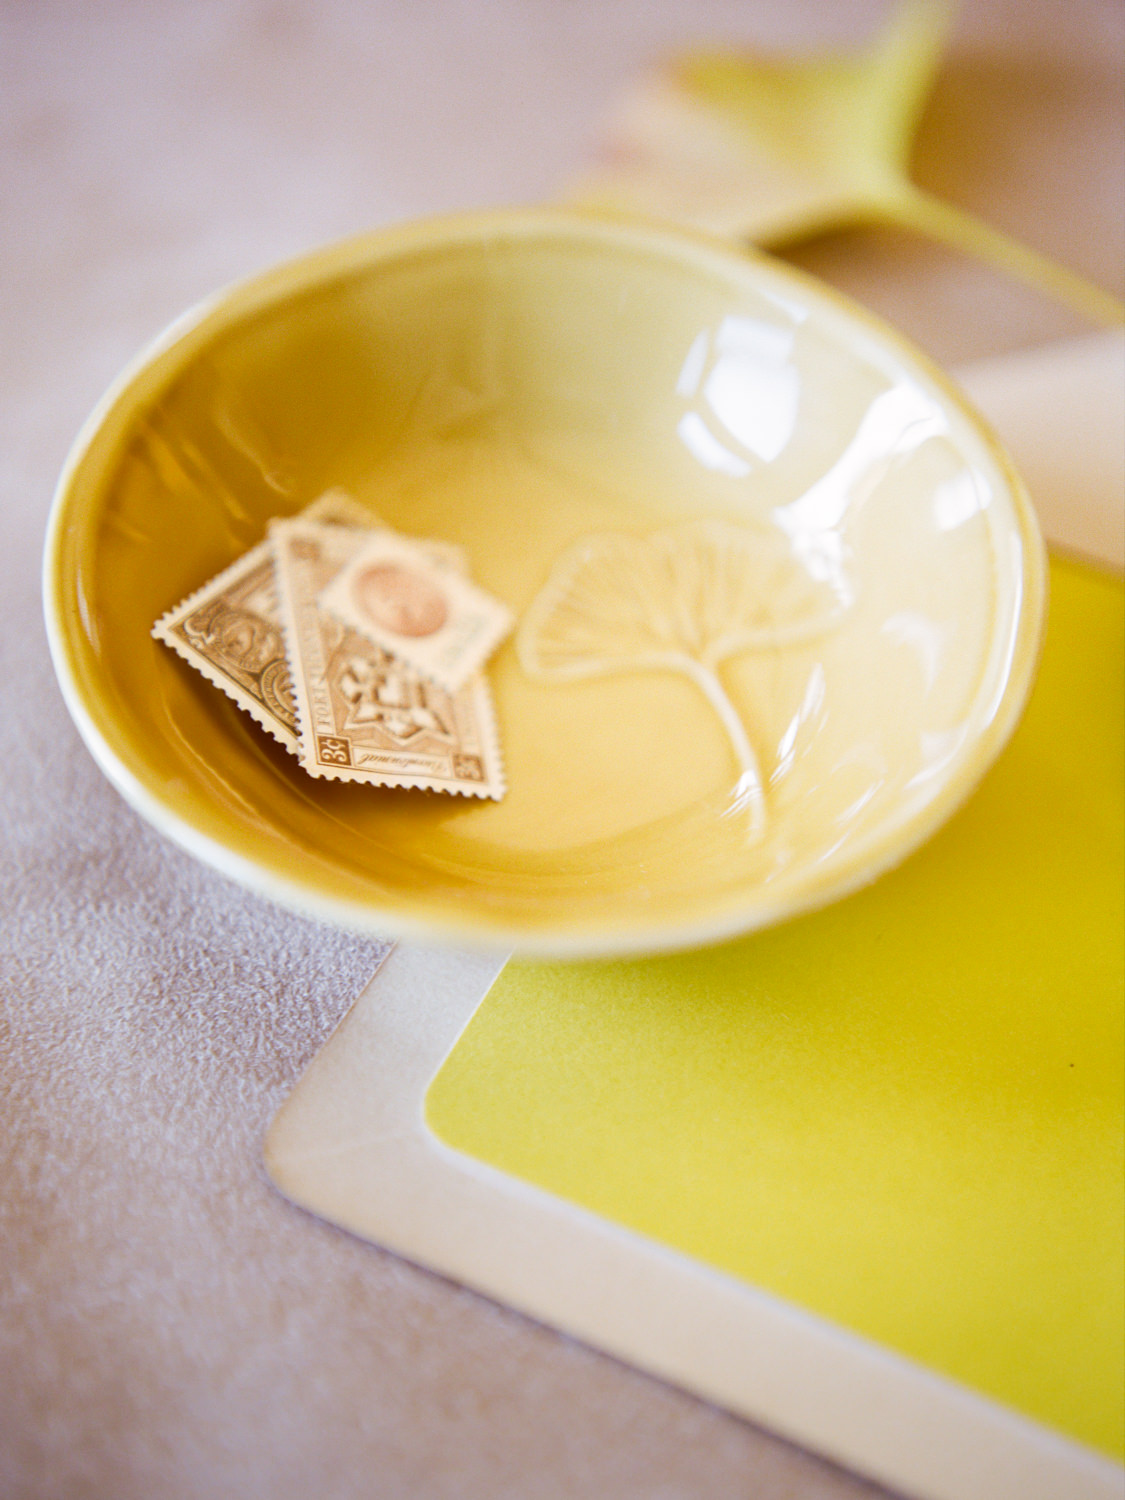 Yellow dish and envelope with vintage stamps; St. Louis Fine Art Film Wedding Photographer Erica Robnett Photography